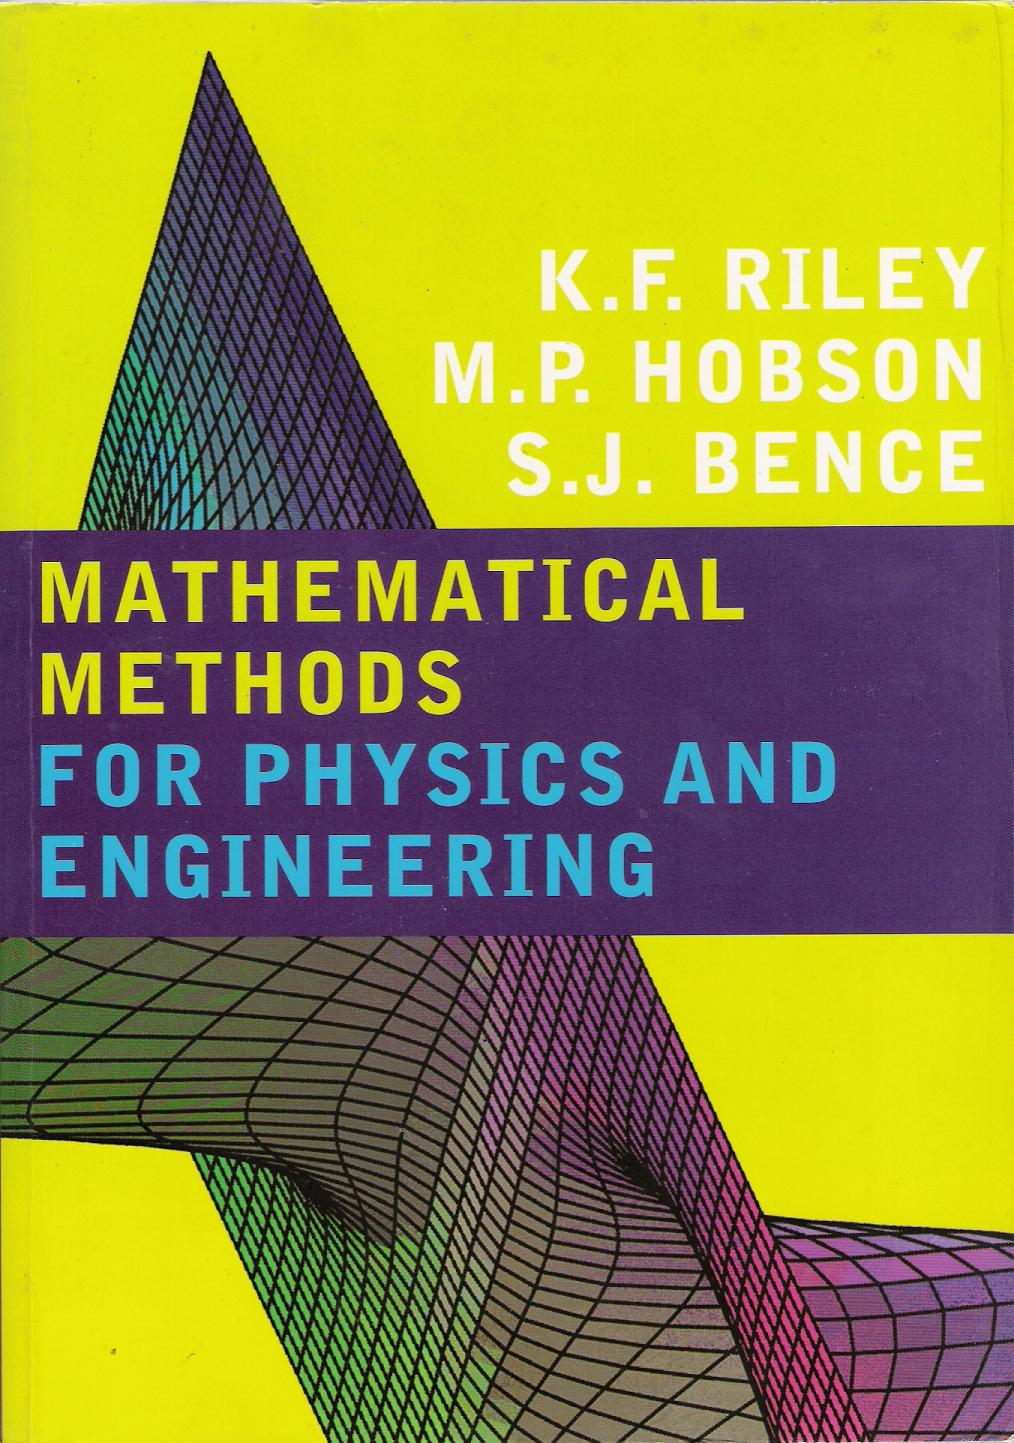 Portada del Mathematical Methods for Physics and Engineering (de K. F. Riley, M. P. Hobson y S. J. Benson)